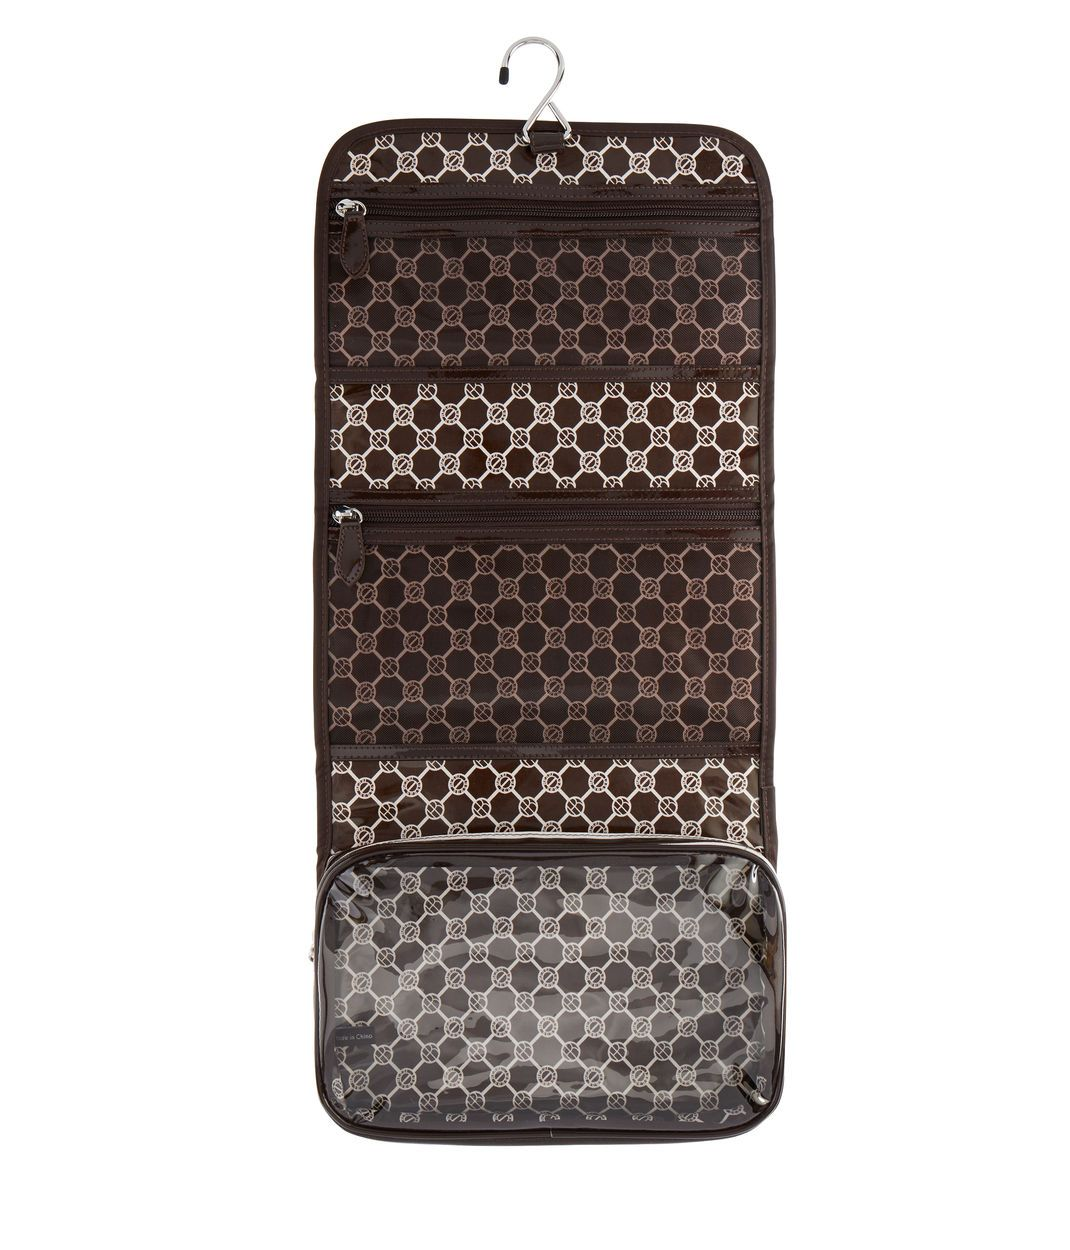 <p>Pack up for the night or the week in the Brown and White Overnighter and your cosmetics will stay perfectly safe and organized. Crafted from a durable coated canvas, this luxury luggage accessory is the perfect companion for your traveling needs.</p>